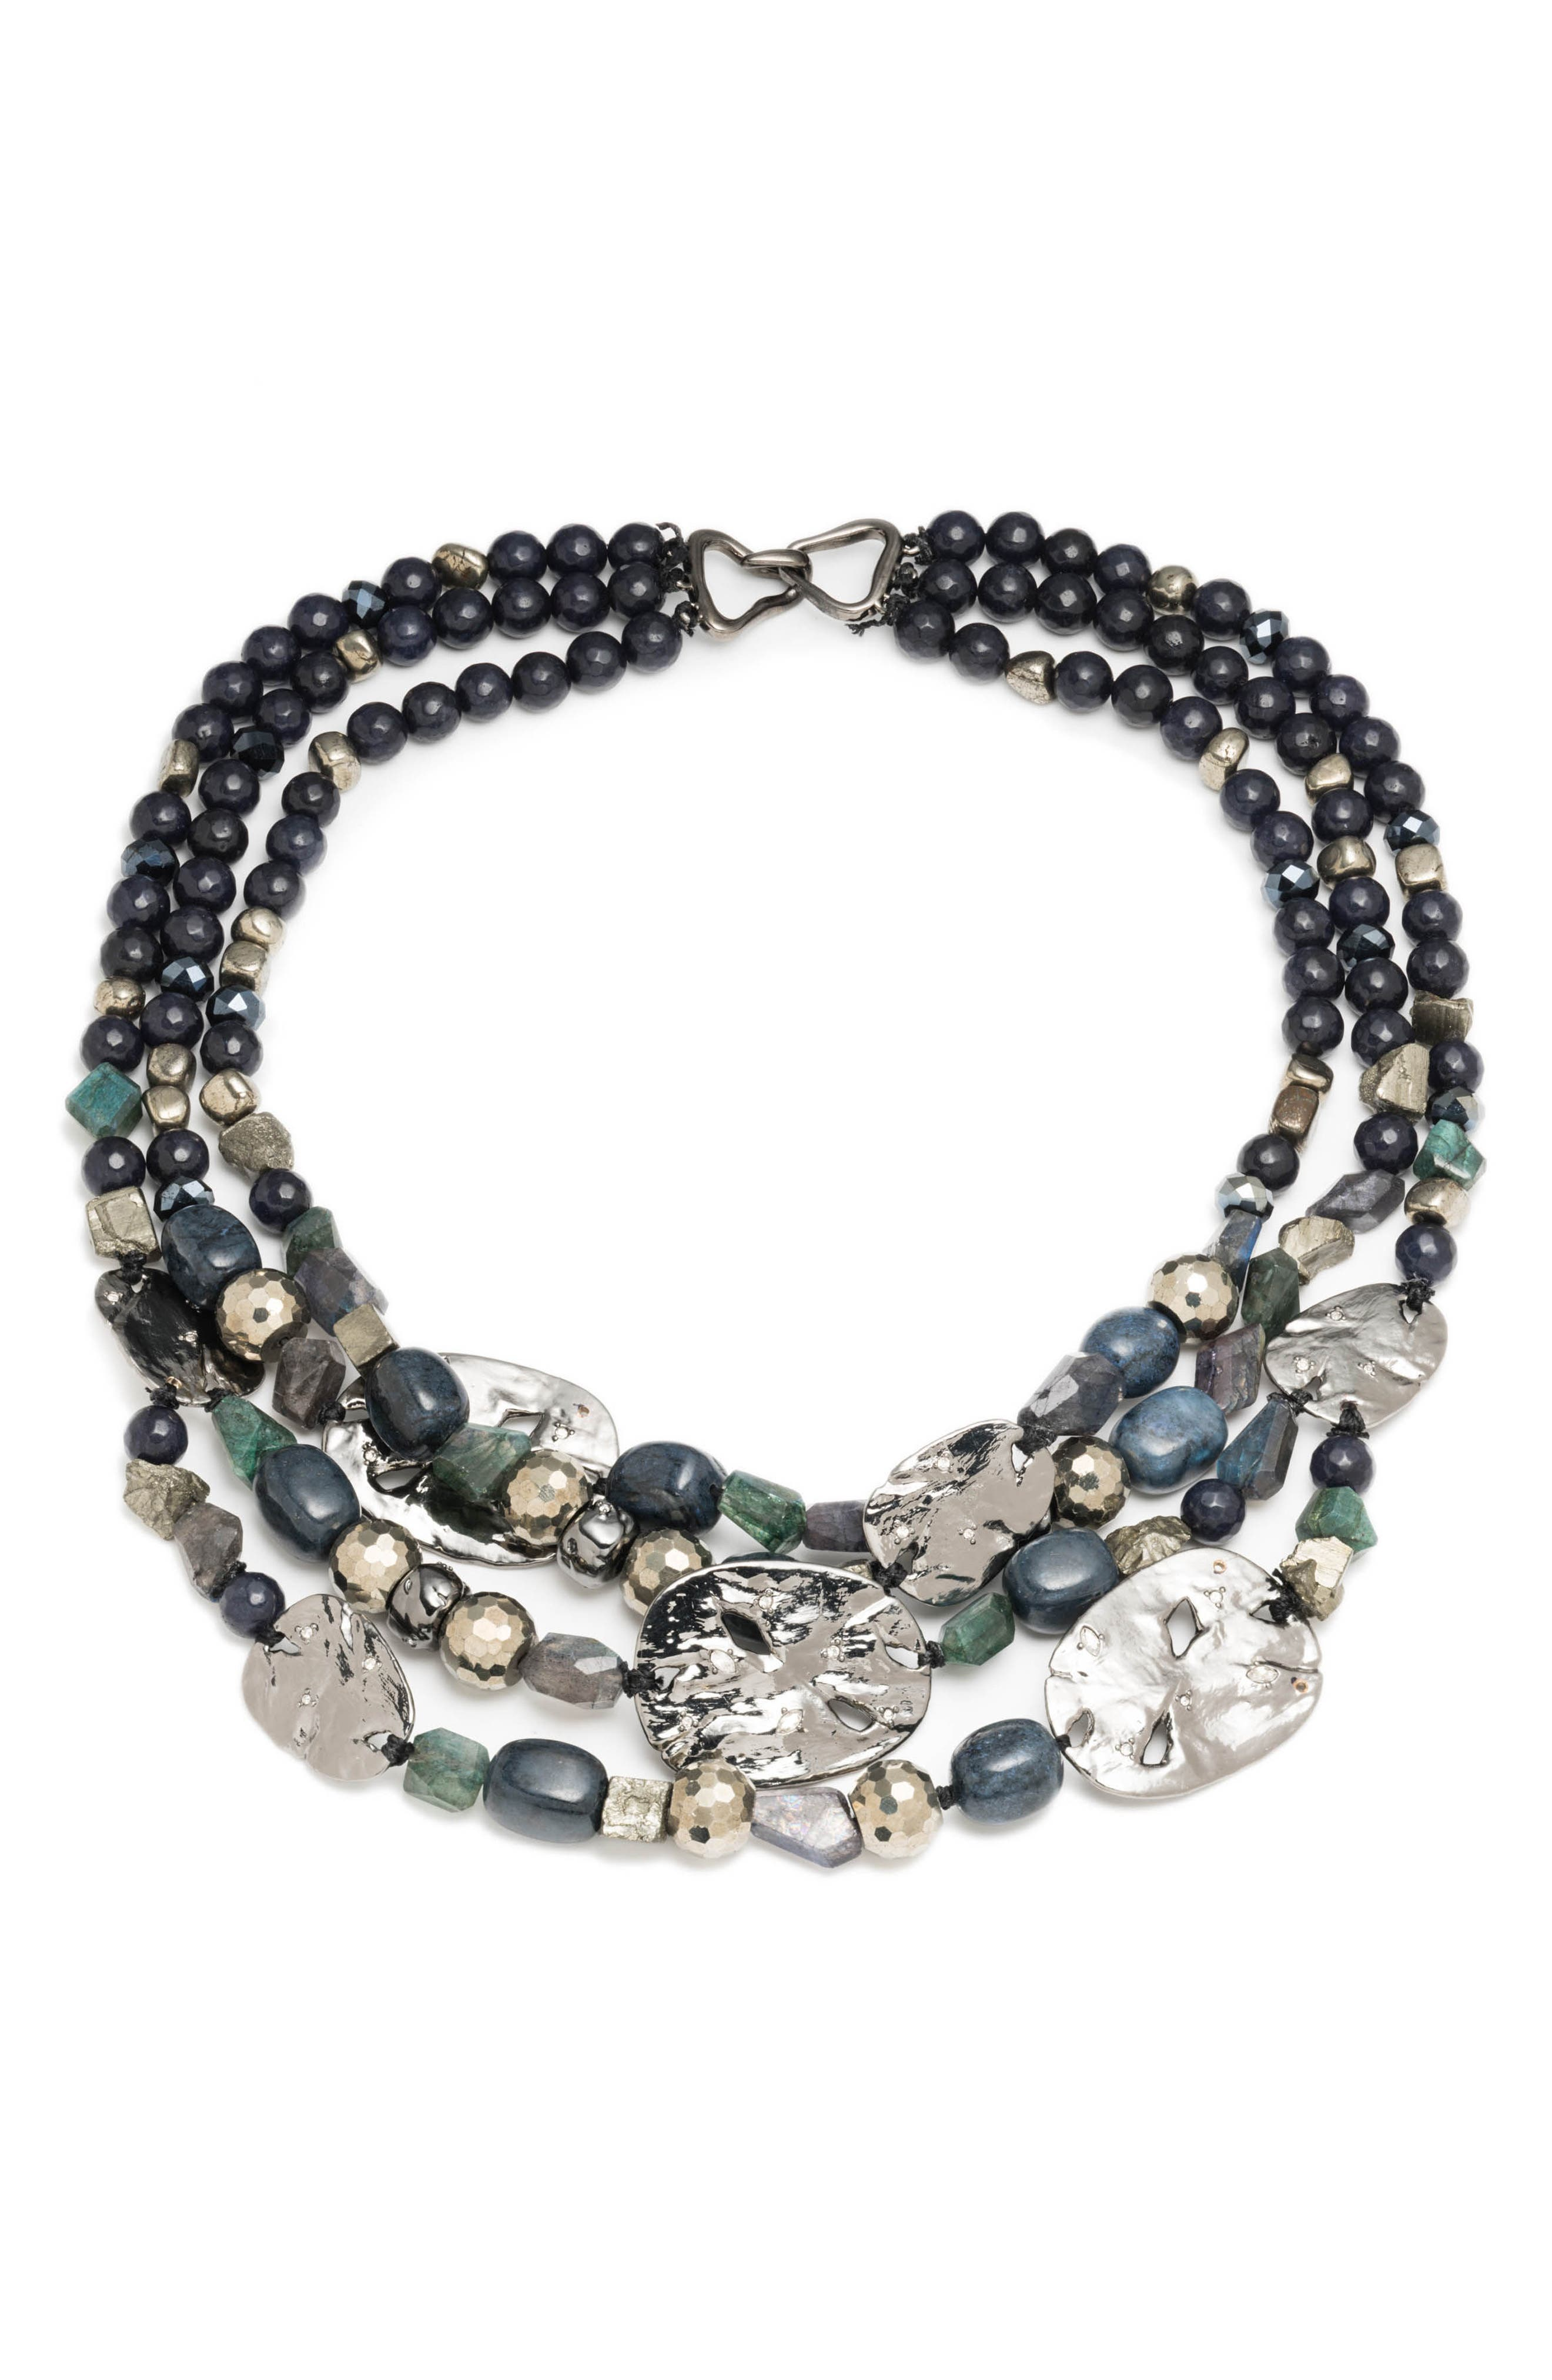 Main Image - Alexis Bittar Elements Multistrand Beaded Necklace